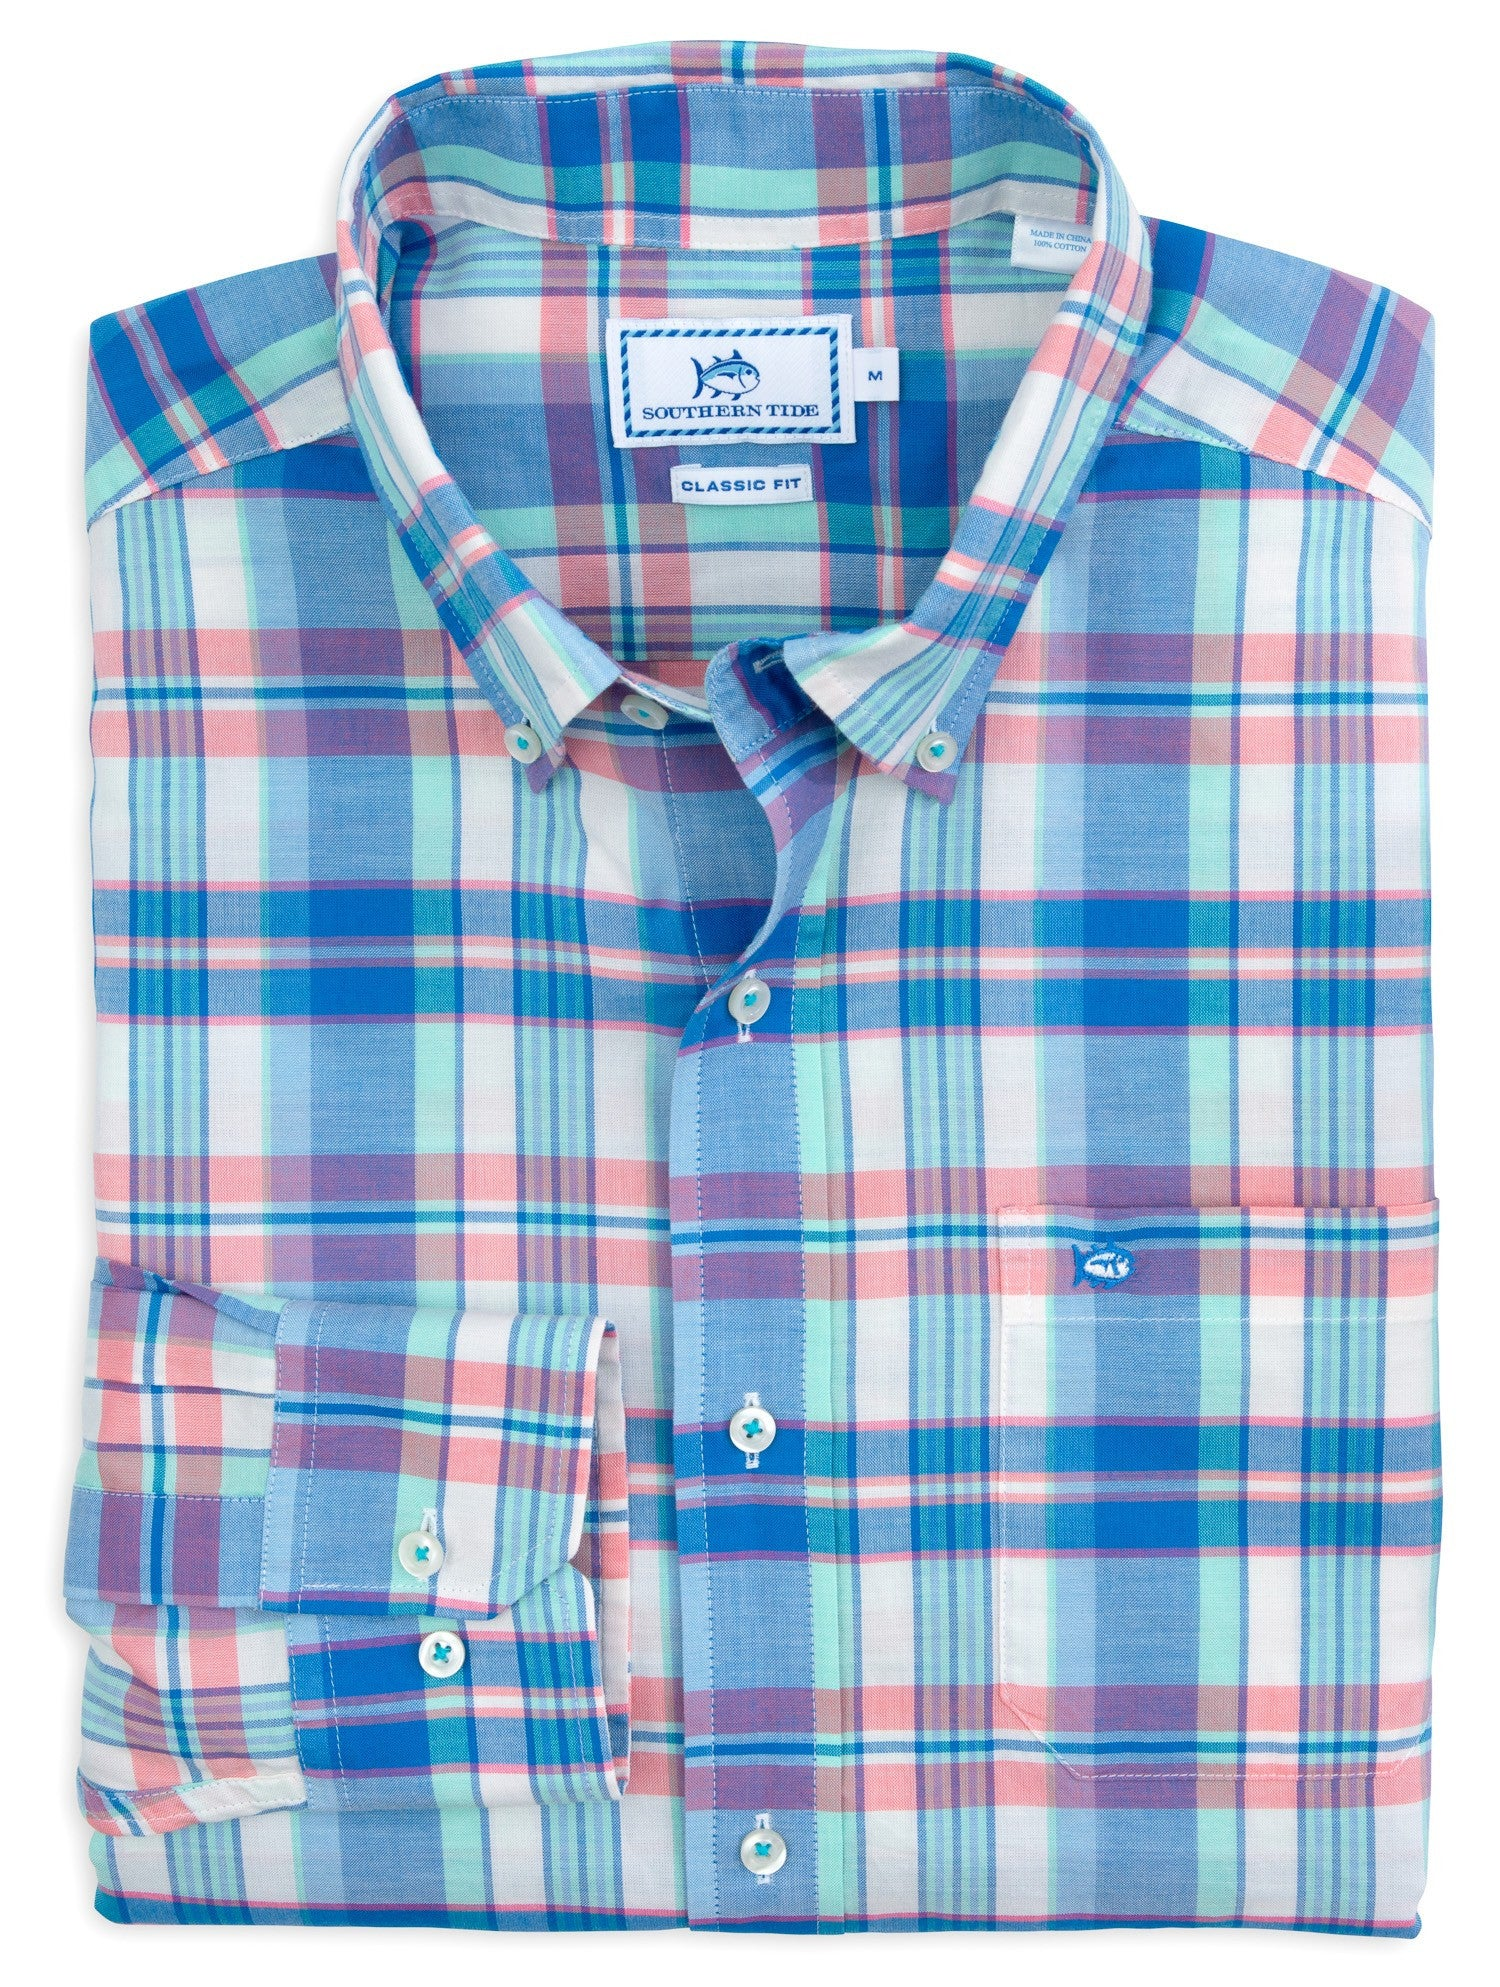 Southern Tide Long Bay Plaid Sport Shirt - Legacy Blue Front View